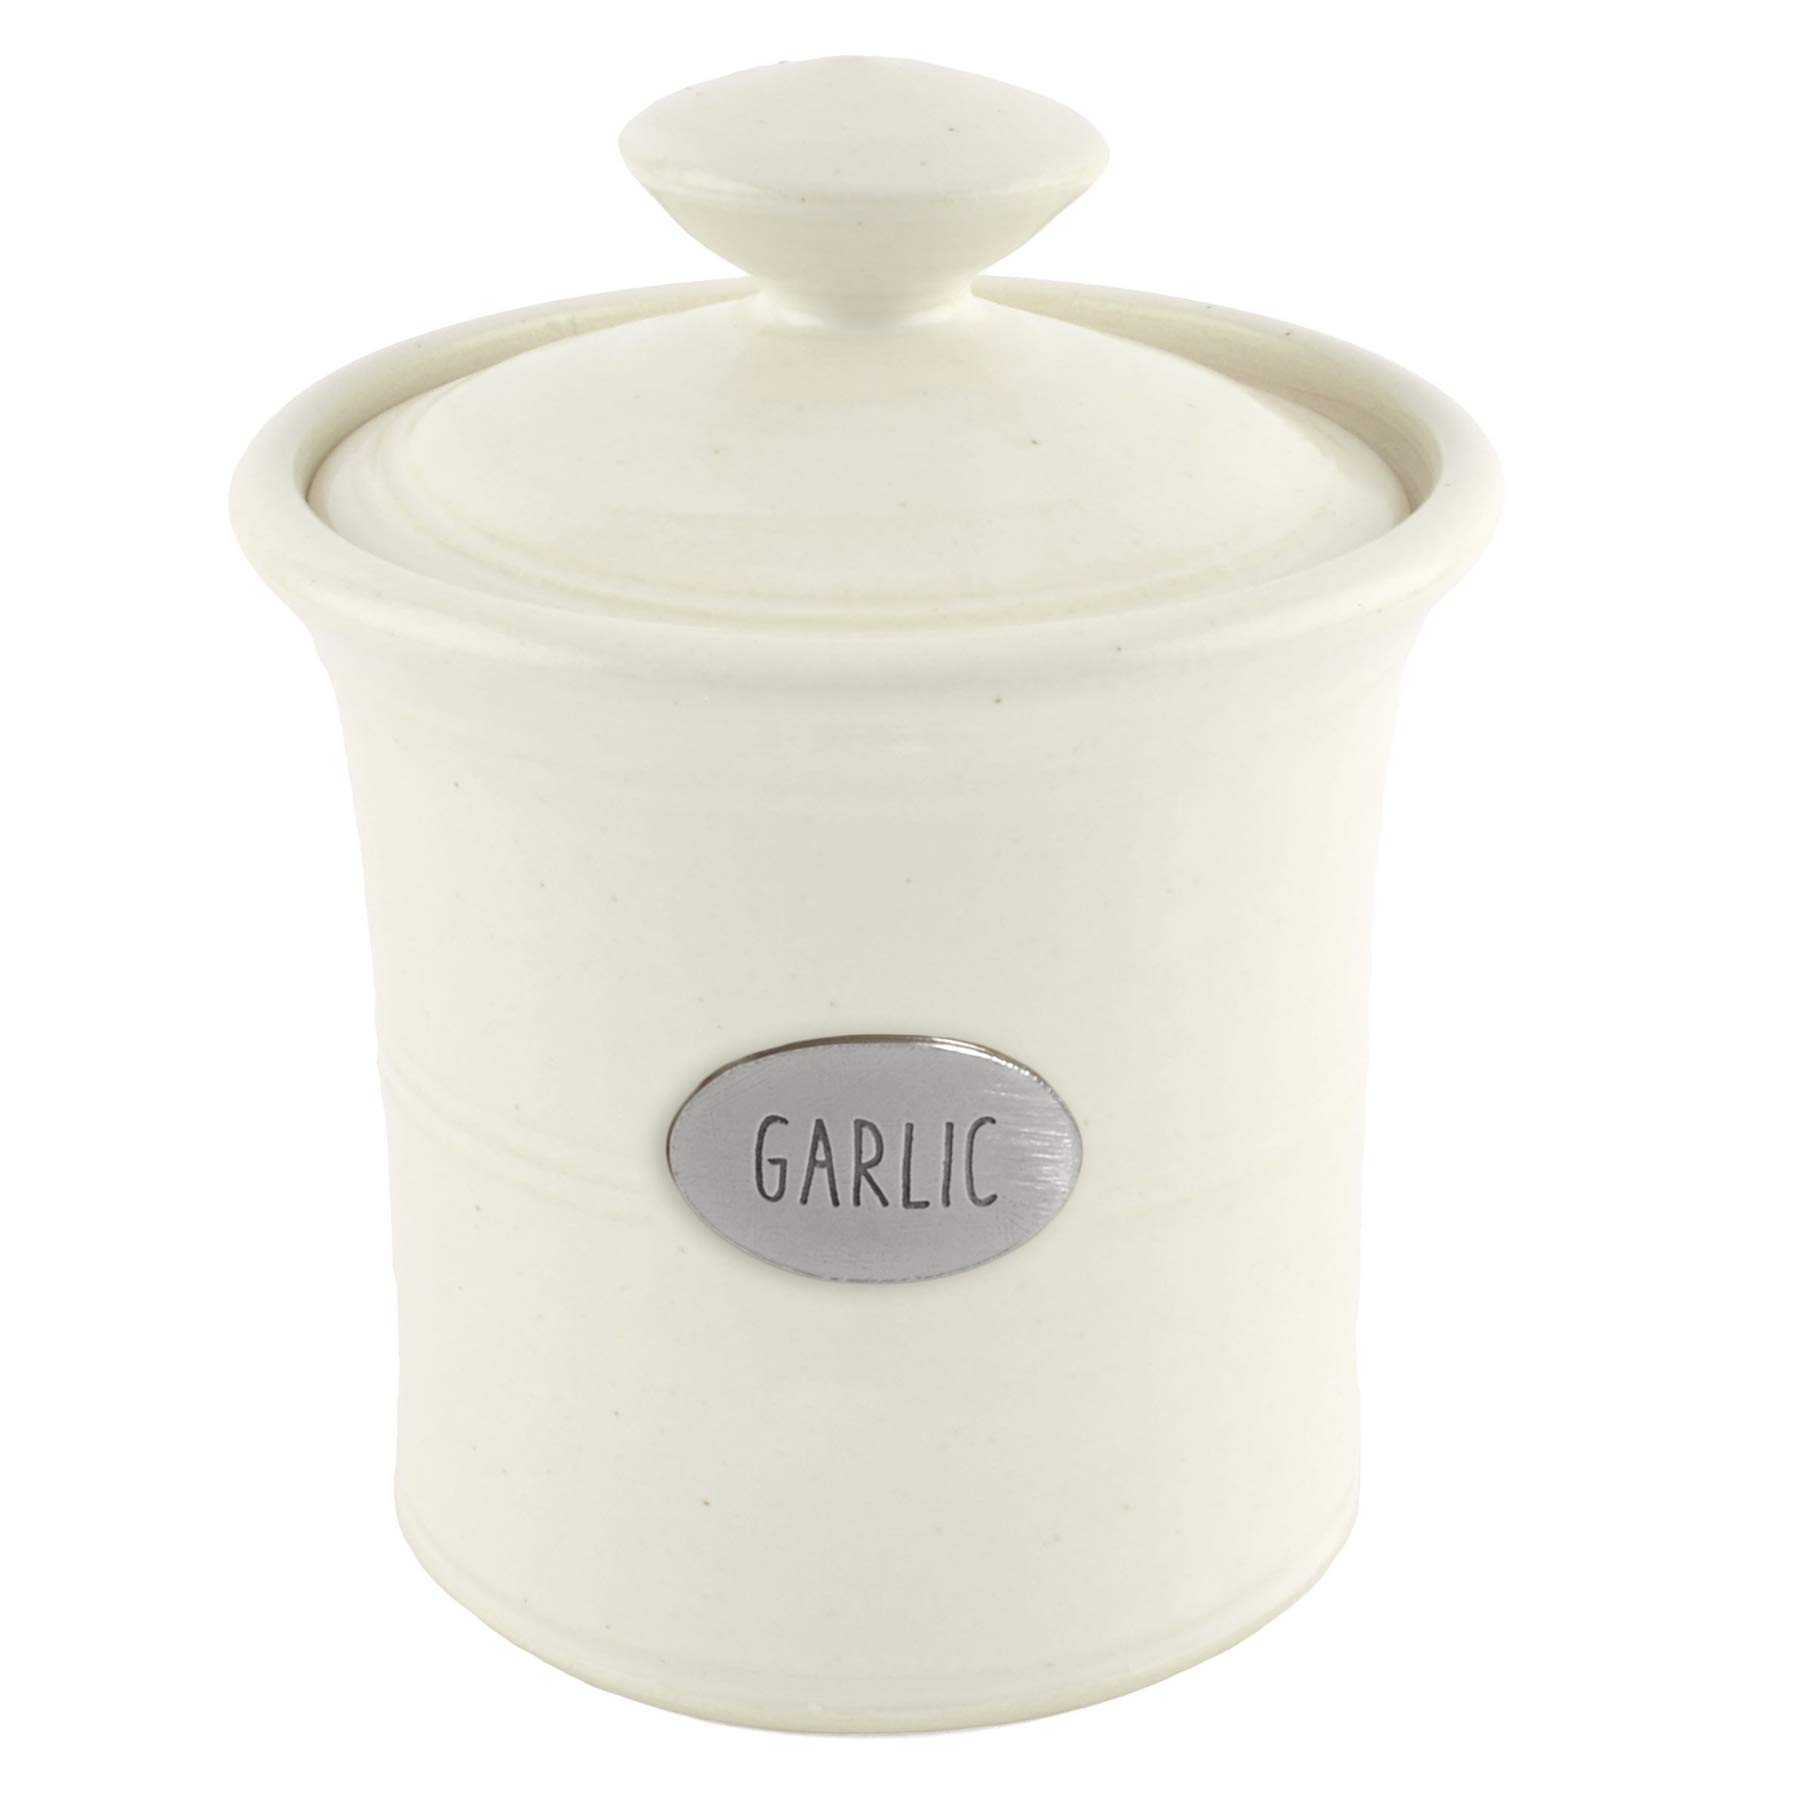 Oregon Stoneware Studio Garlic Pot, Whipping Cream by Oregon Stoneware Studio